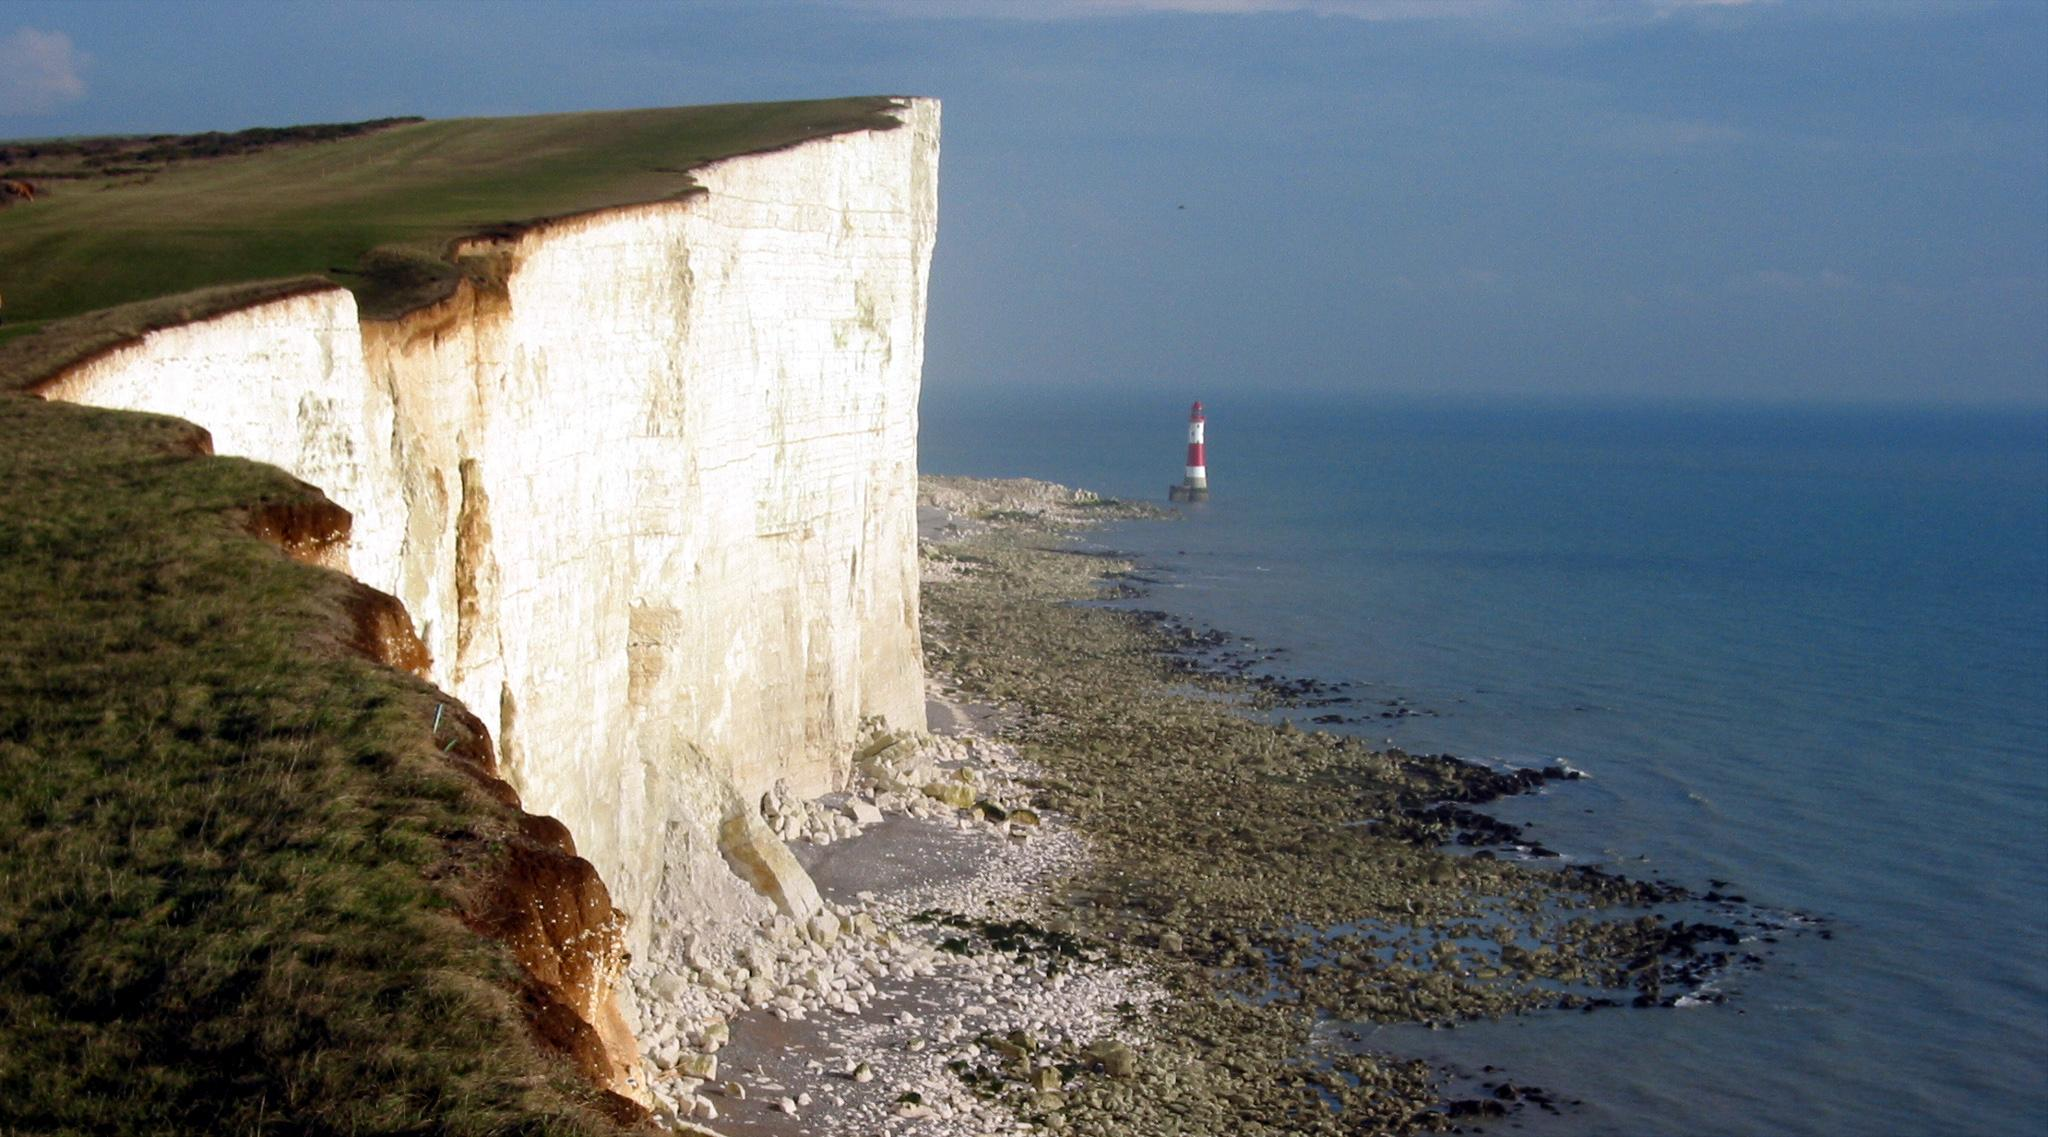 Birling Gap evacuated after 'chemical incident' on East Sussex coast